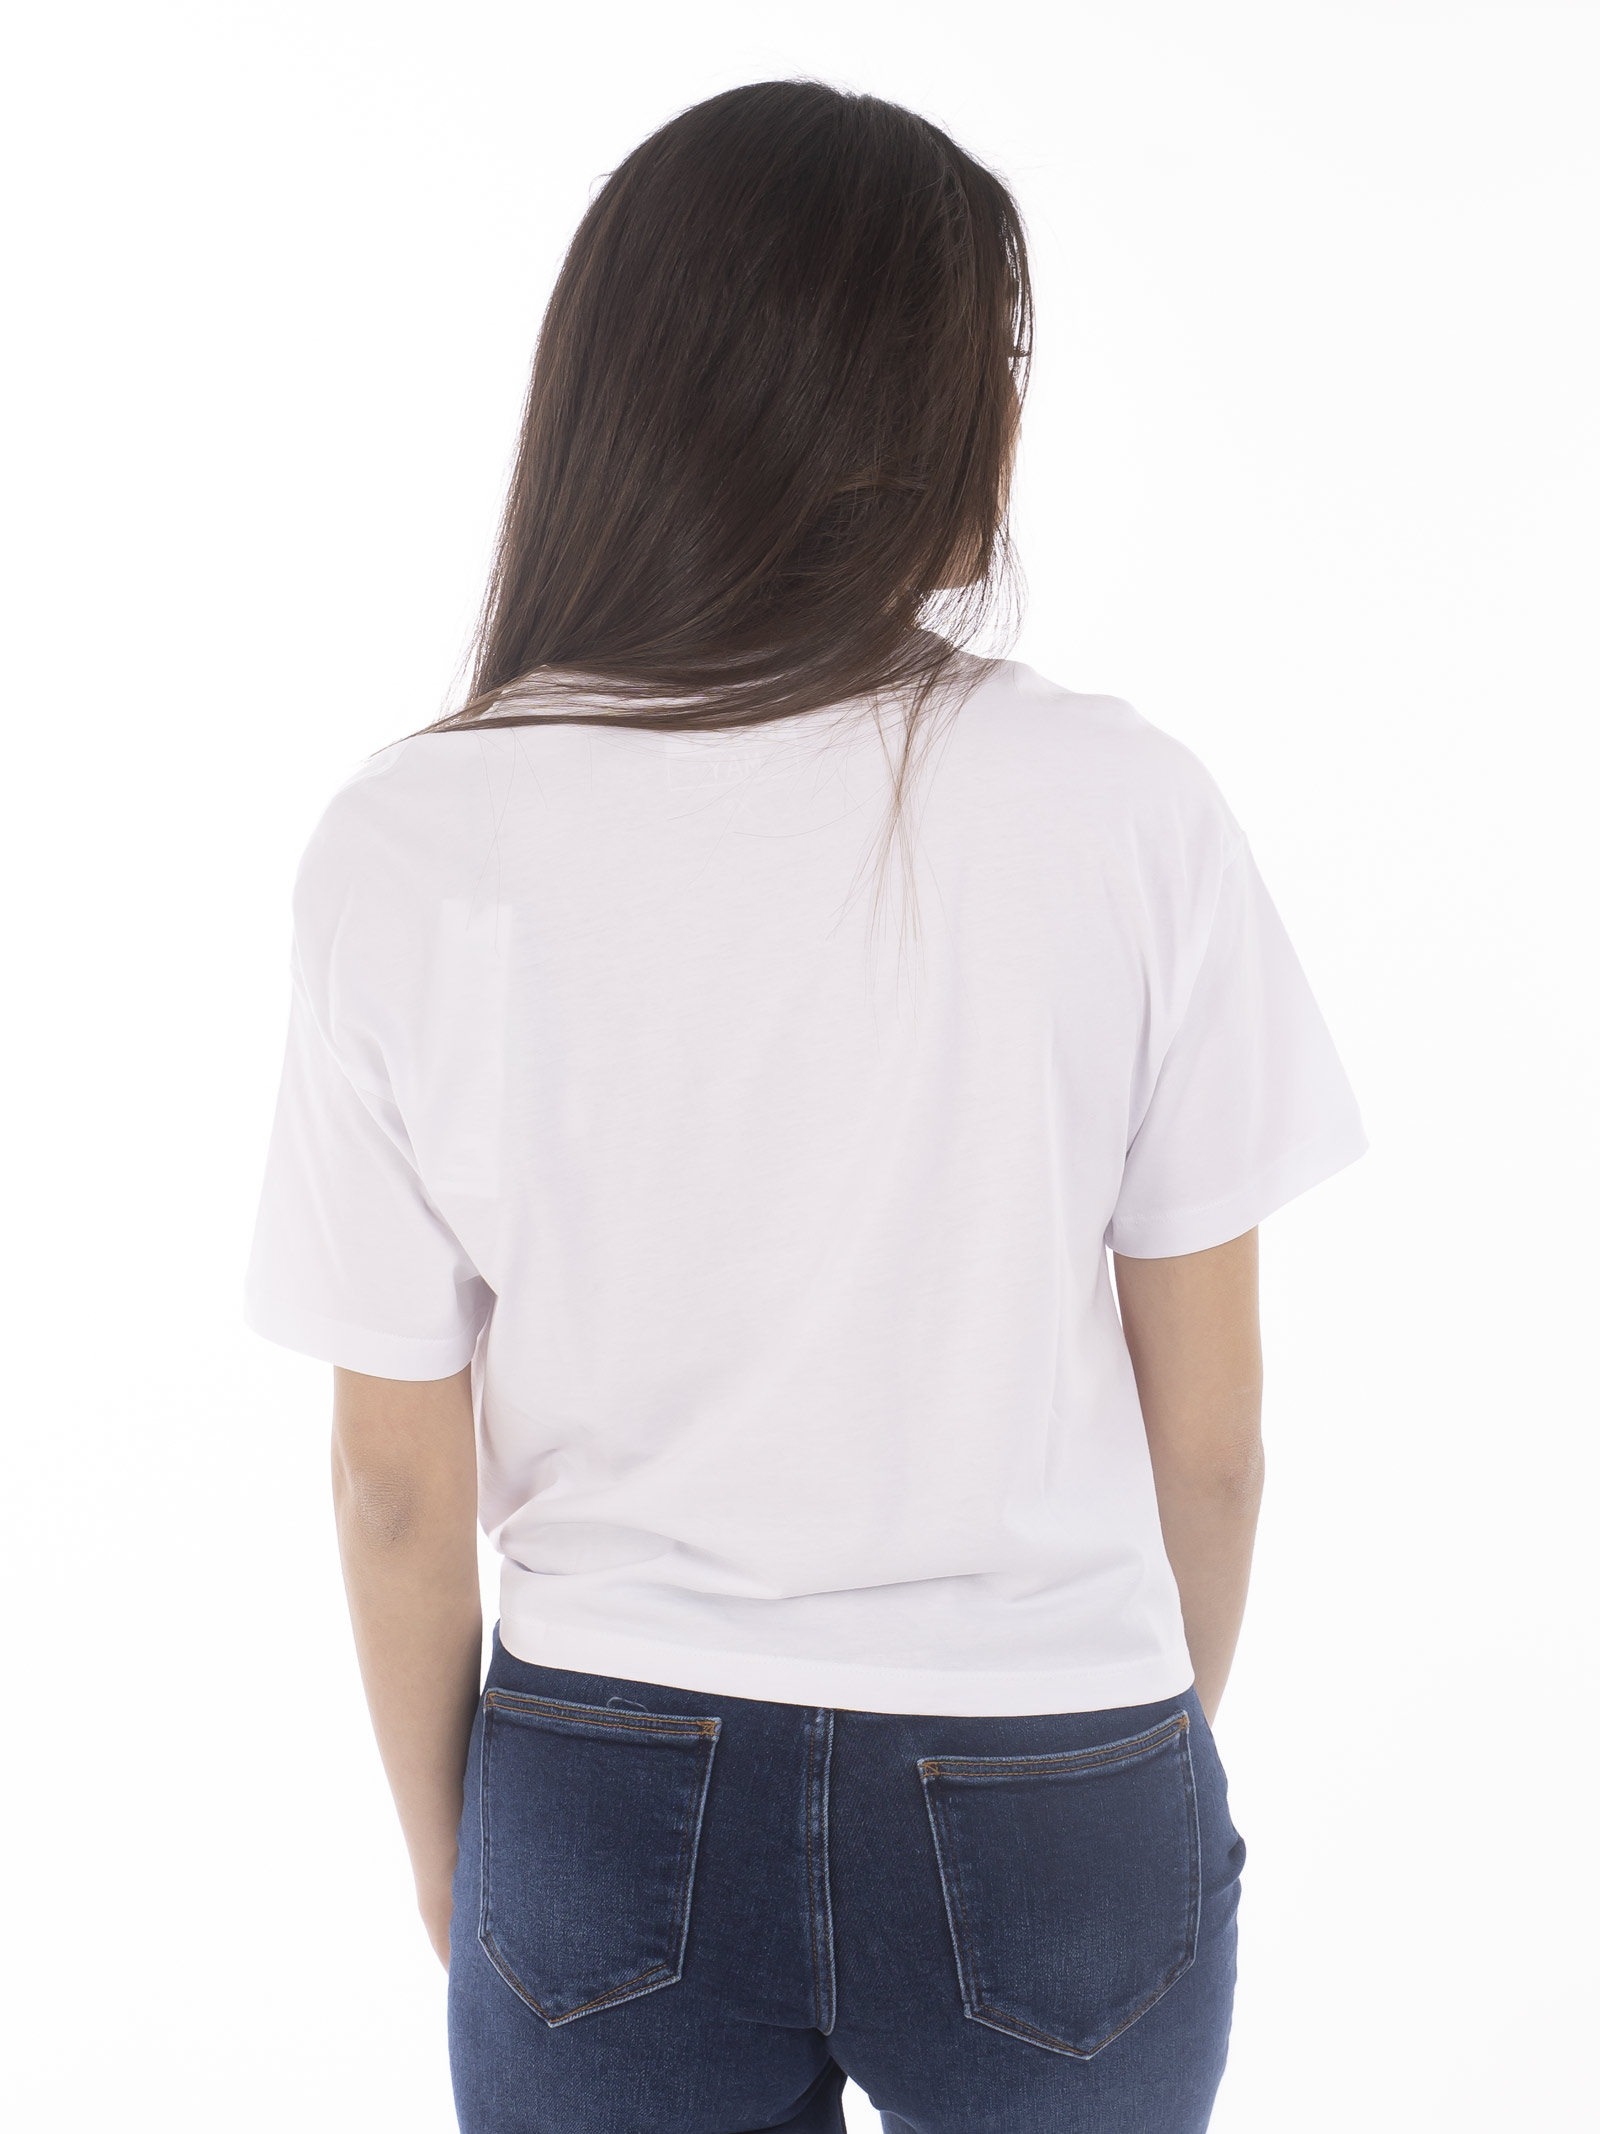 T-SHIRT NOISY MAY | Maglie | 27011007BIANCO